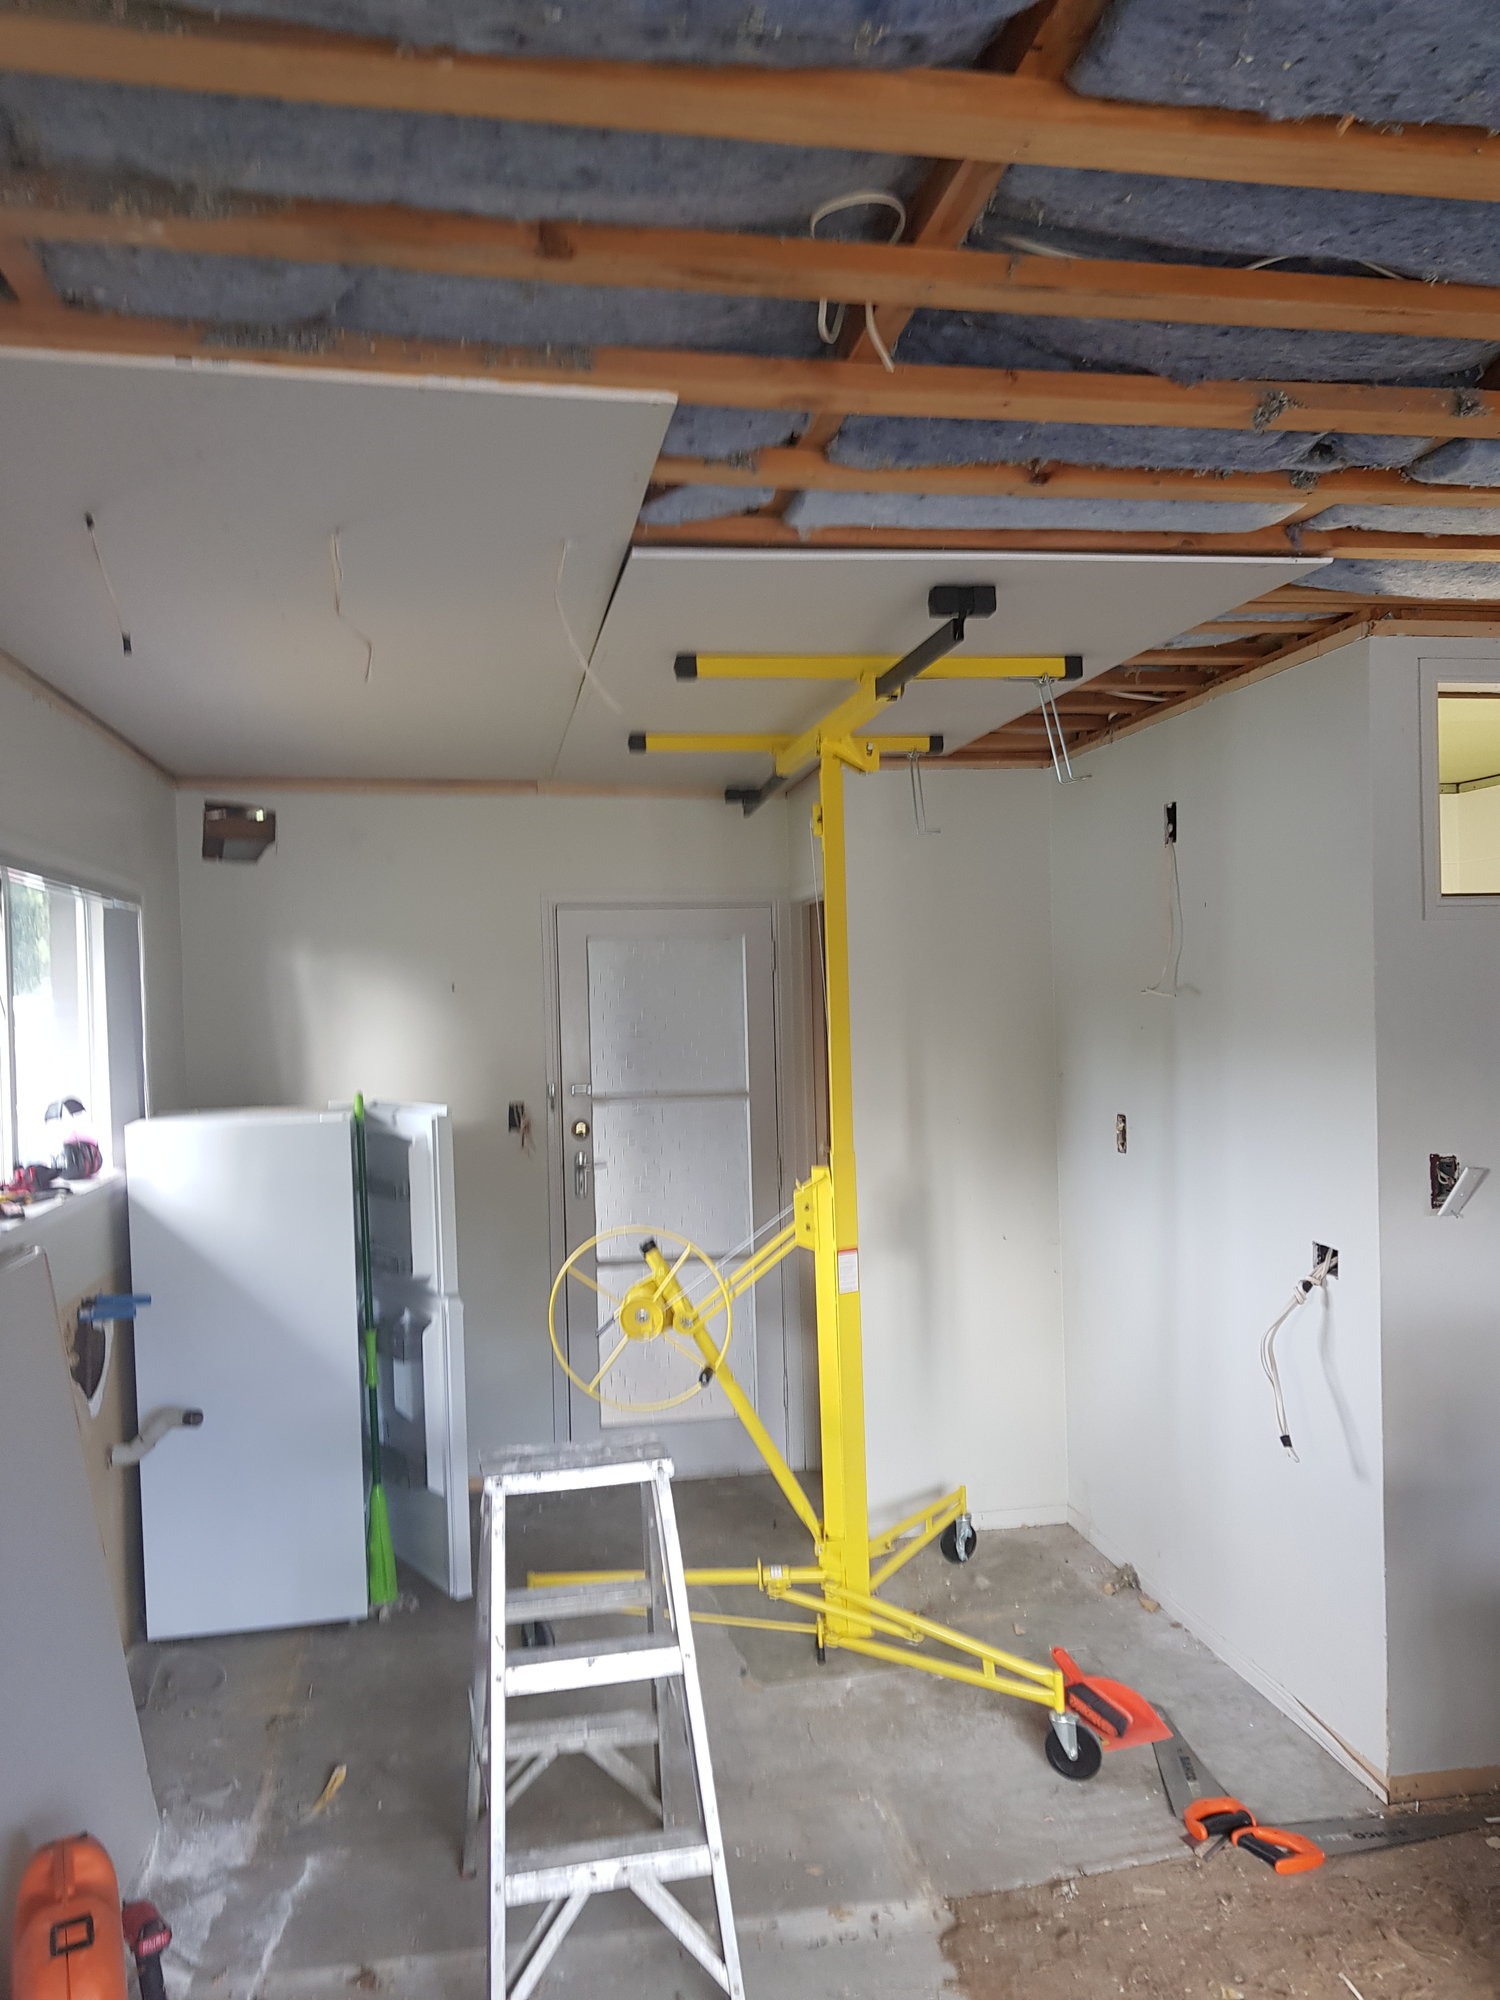 Installing A Kitchen The Shed Out How To Hide Wires Between Ceiling And Fixture Itself